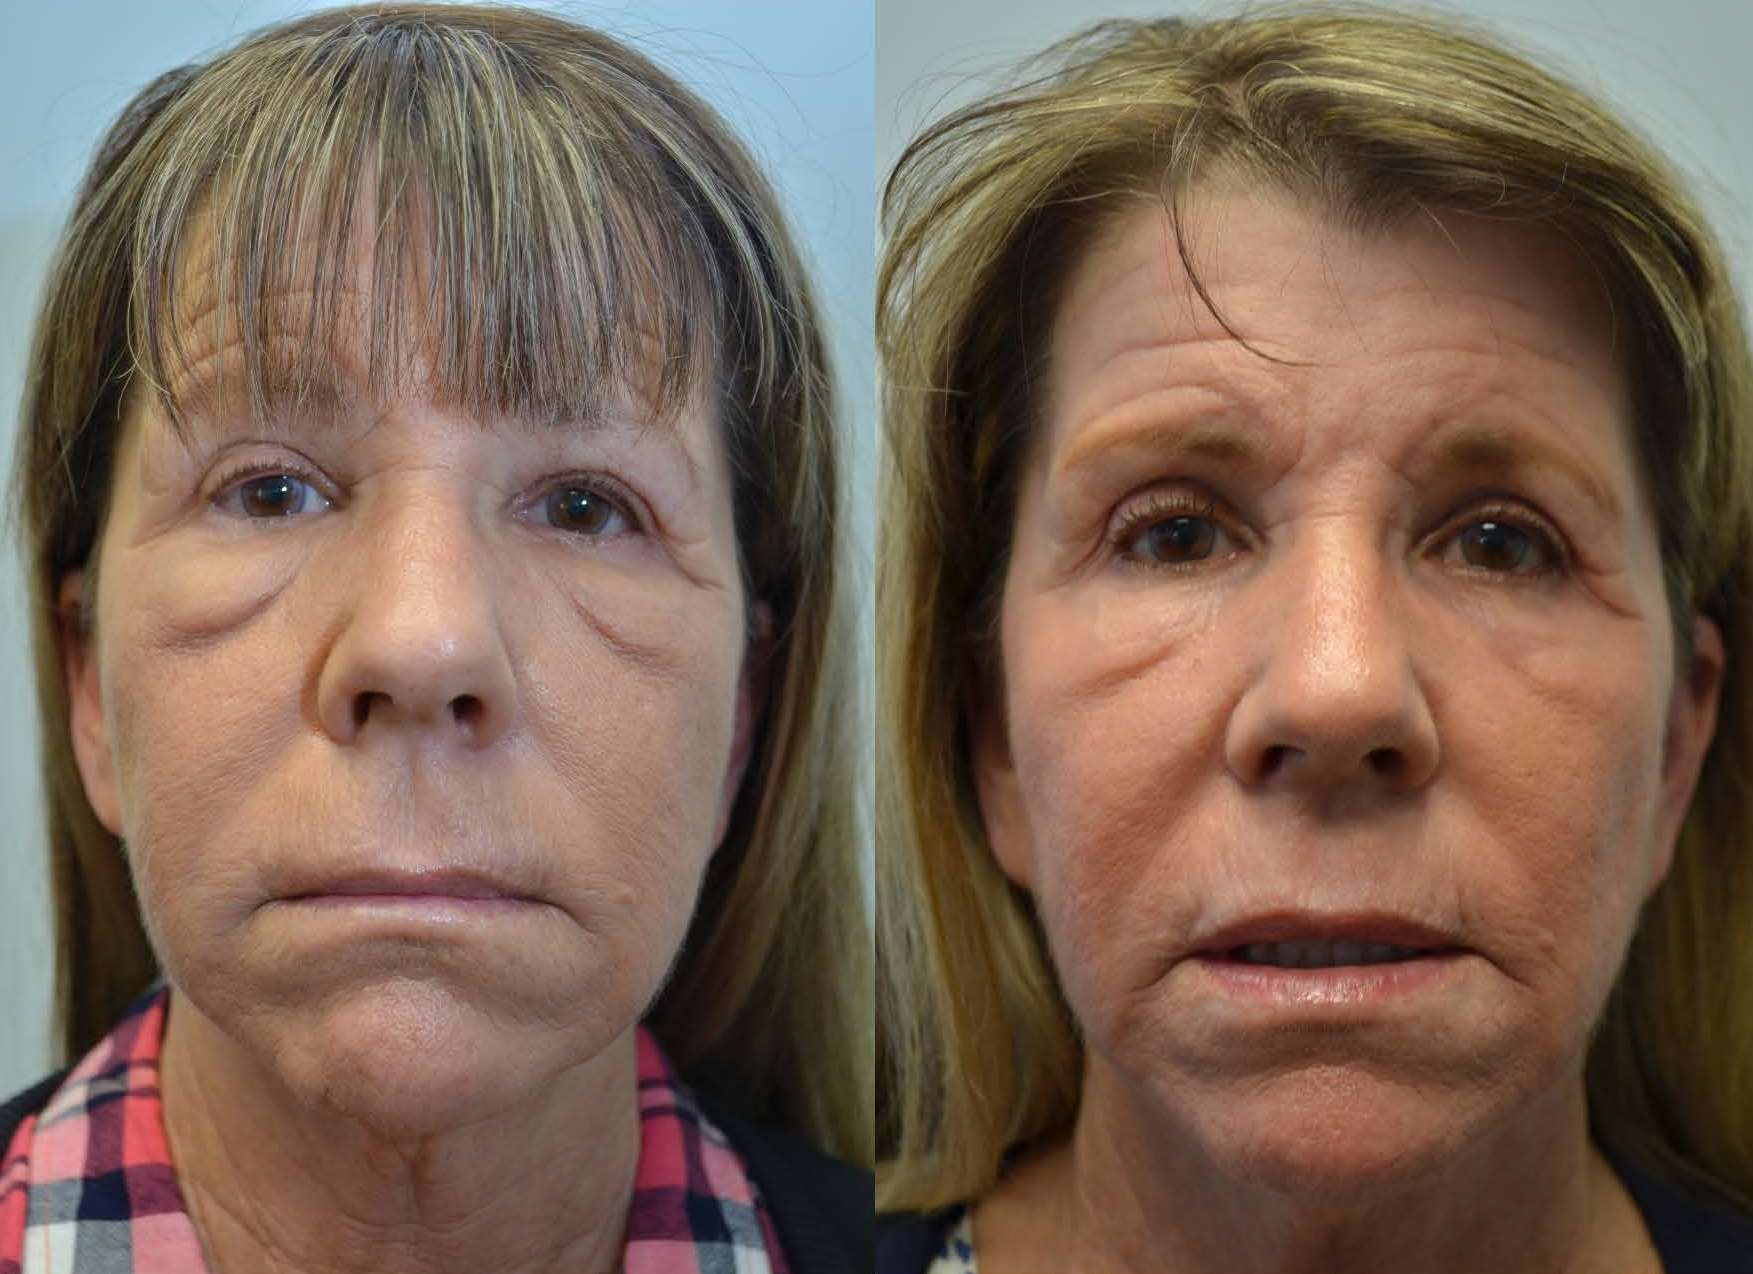 C02 Laser Resurfacing Thousand Oaks